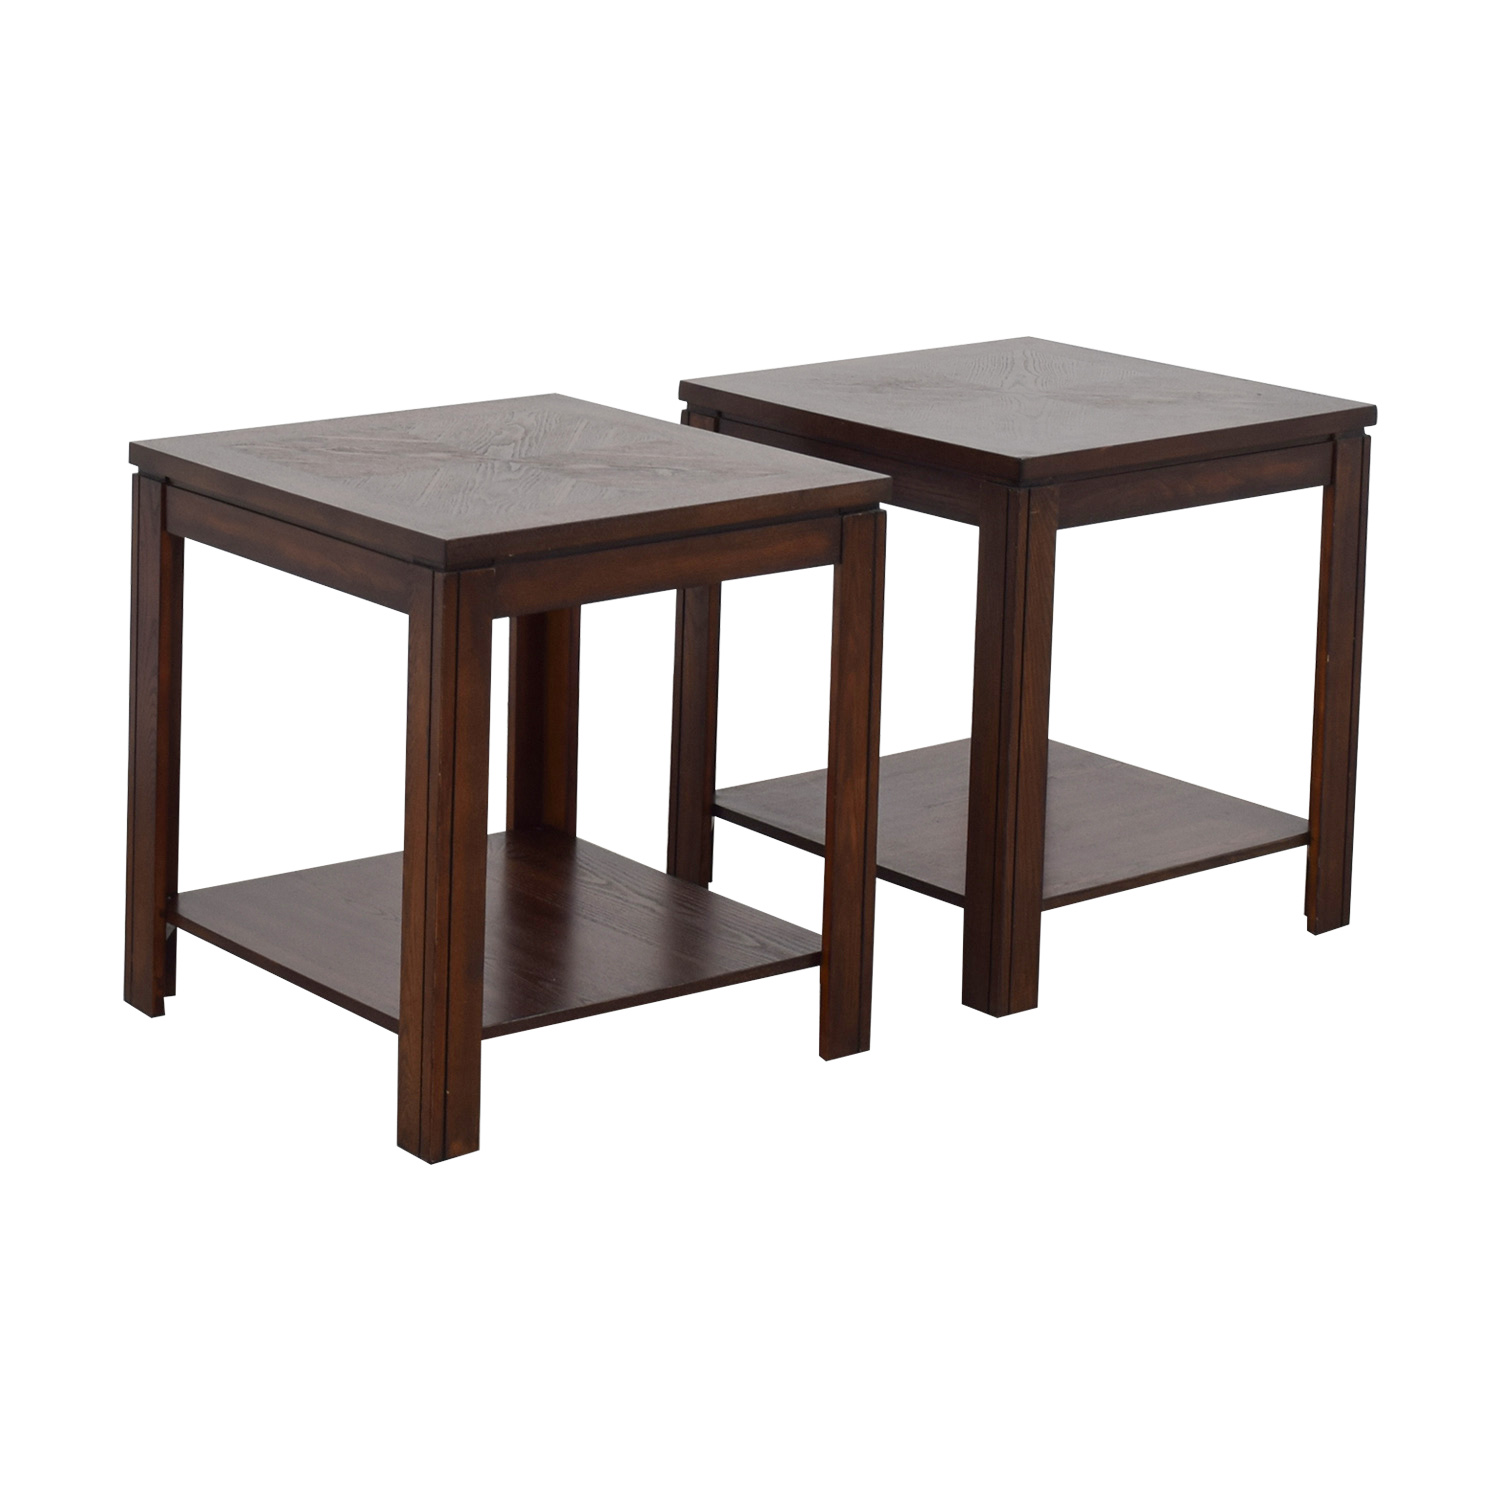 Bob's Furniture Bob's Furniture Lower Shelf End Tables Brown